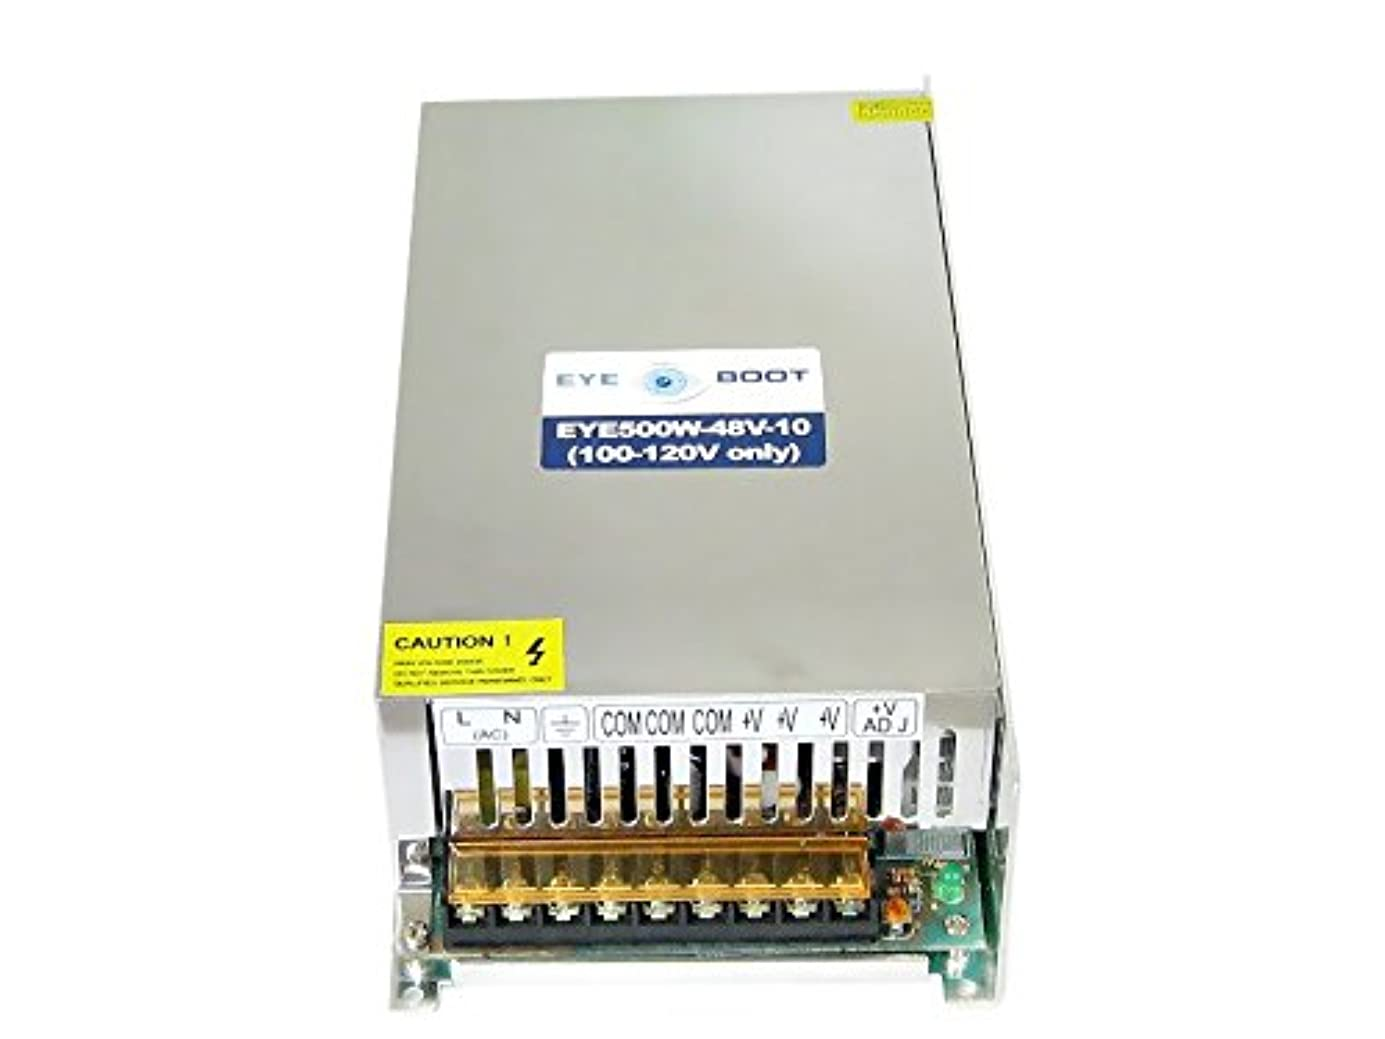 Eyeboot 48V 500W DC Universal Regulated Switching Power Supply AC to DC 10.4 amps pulcwq4785